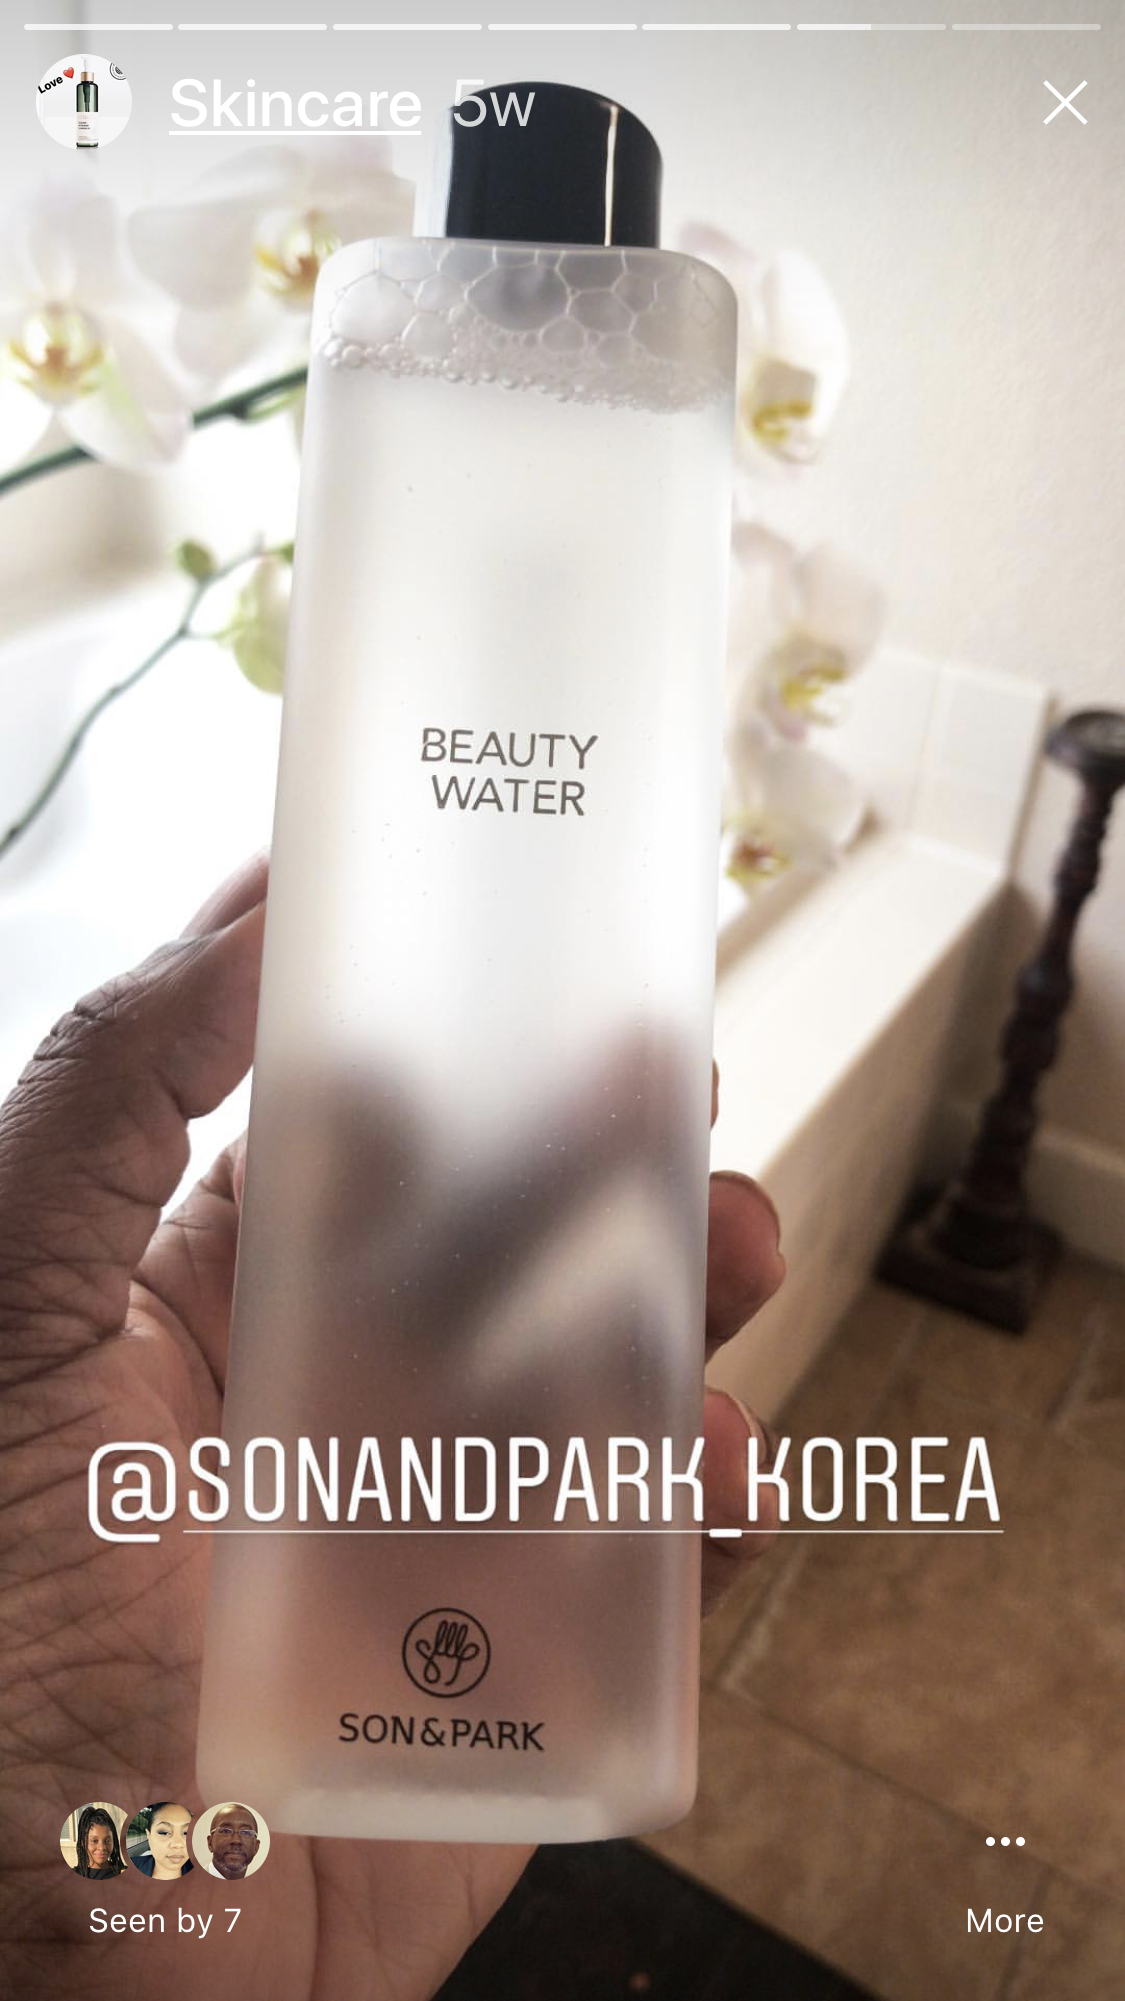 """Here is another view. """"SON & PARK"""" The name is perfect, """"BEAUTY WATER"""". I hope that you all go and get one. Sephora gives out samples. If you already use micellar waters you may appreciate this one.  Sephora makeup artist uses """"BEAUTY WATER"""" while demonstrating make-overs. That is how I discovered this brand."""